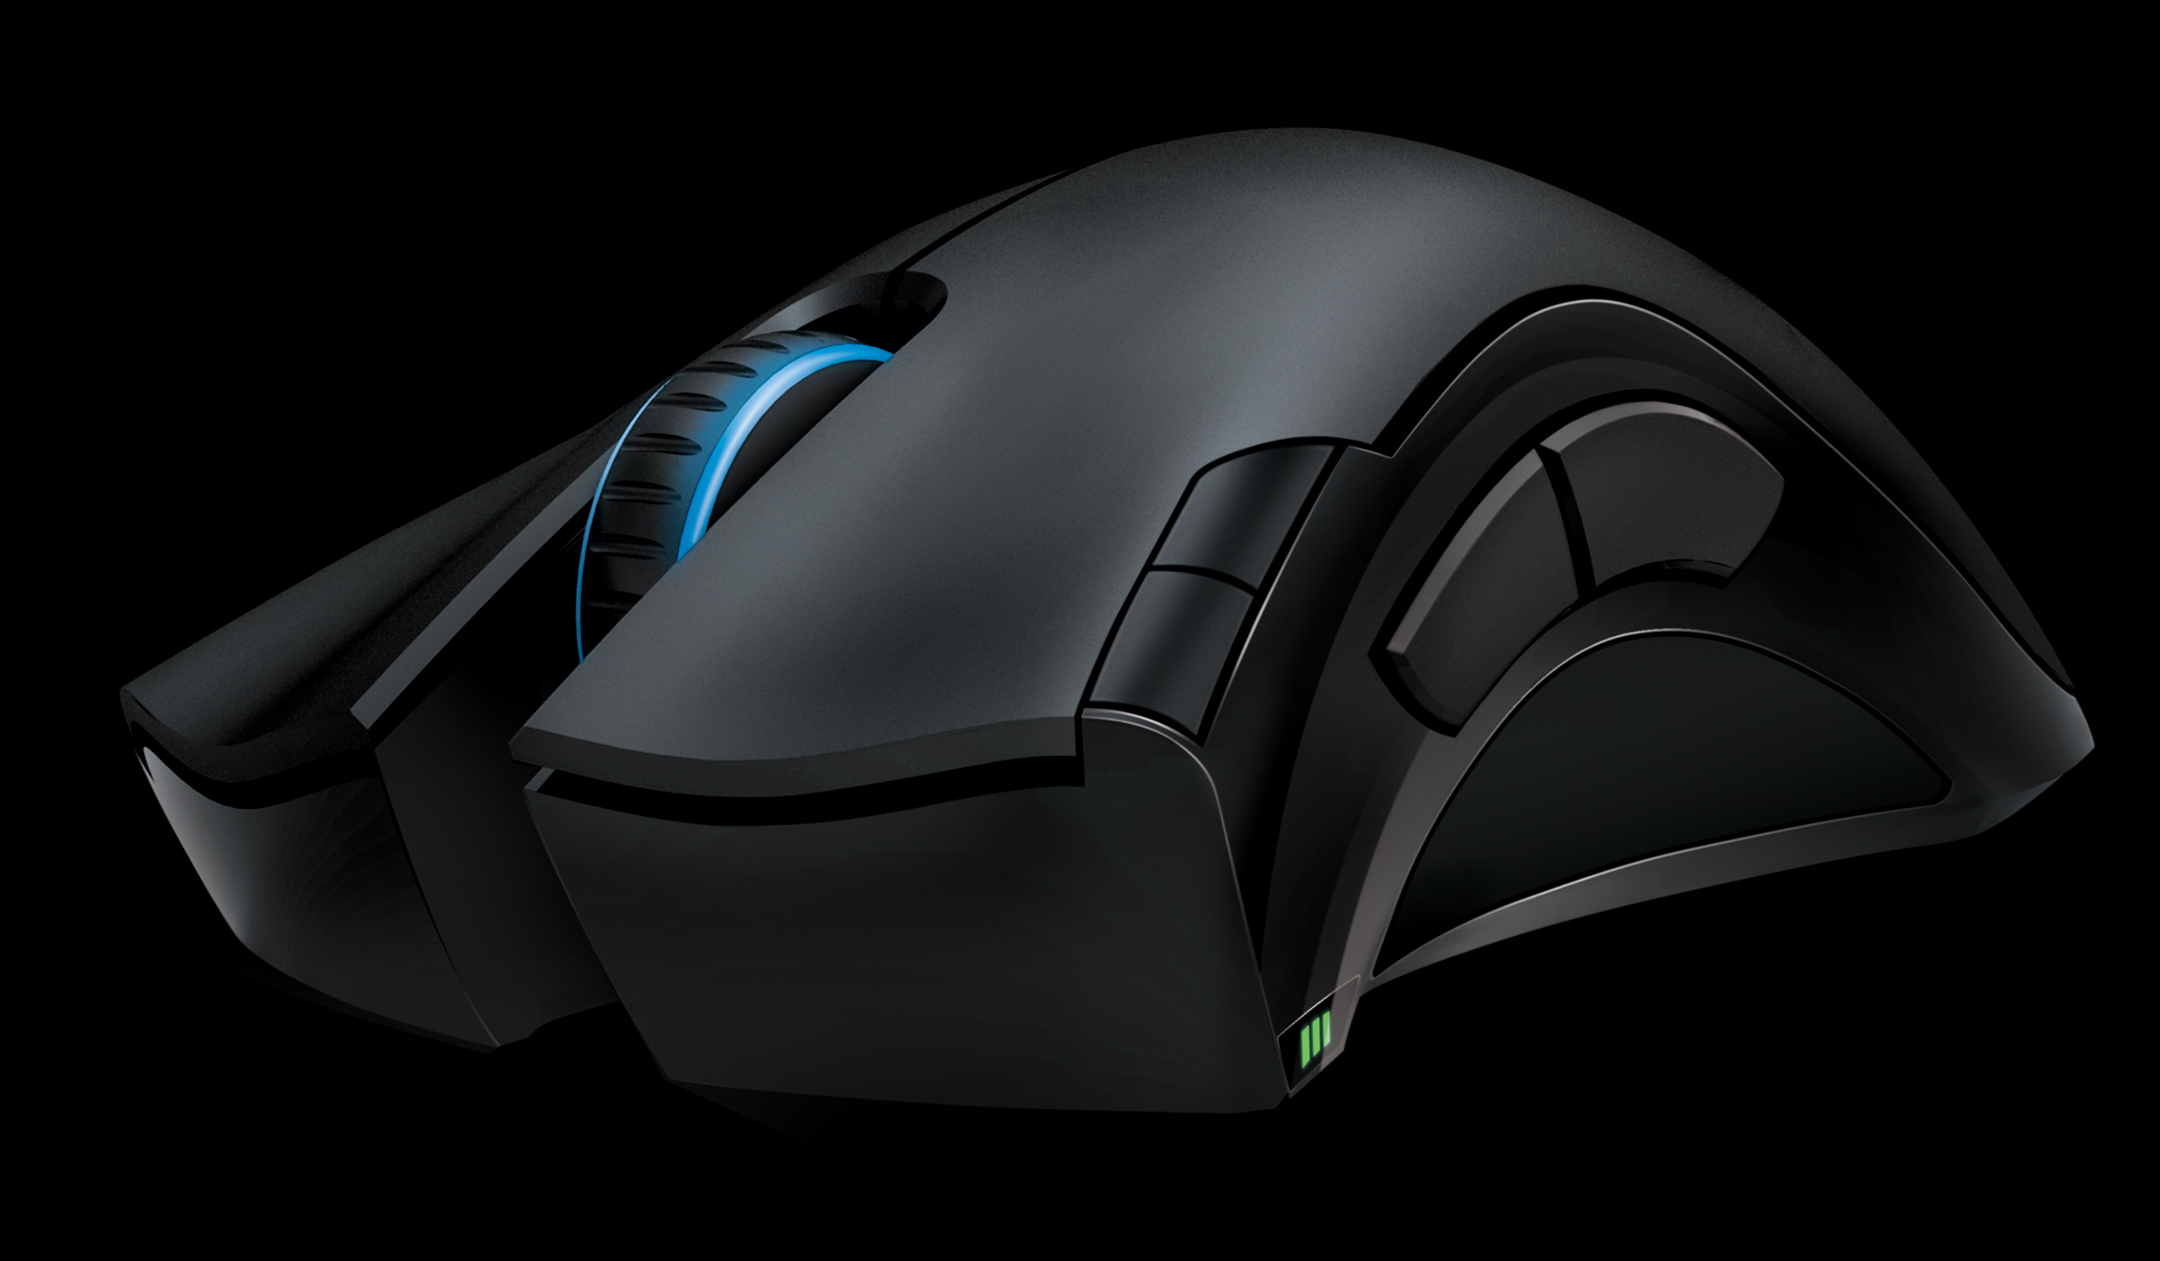 Razer Prohibits Use of Its Mice with Multiple PCs